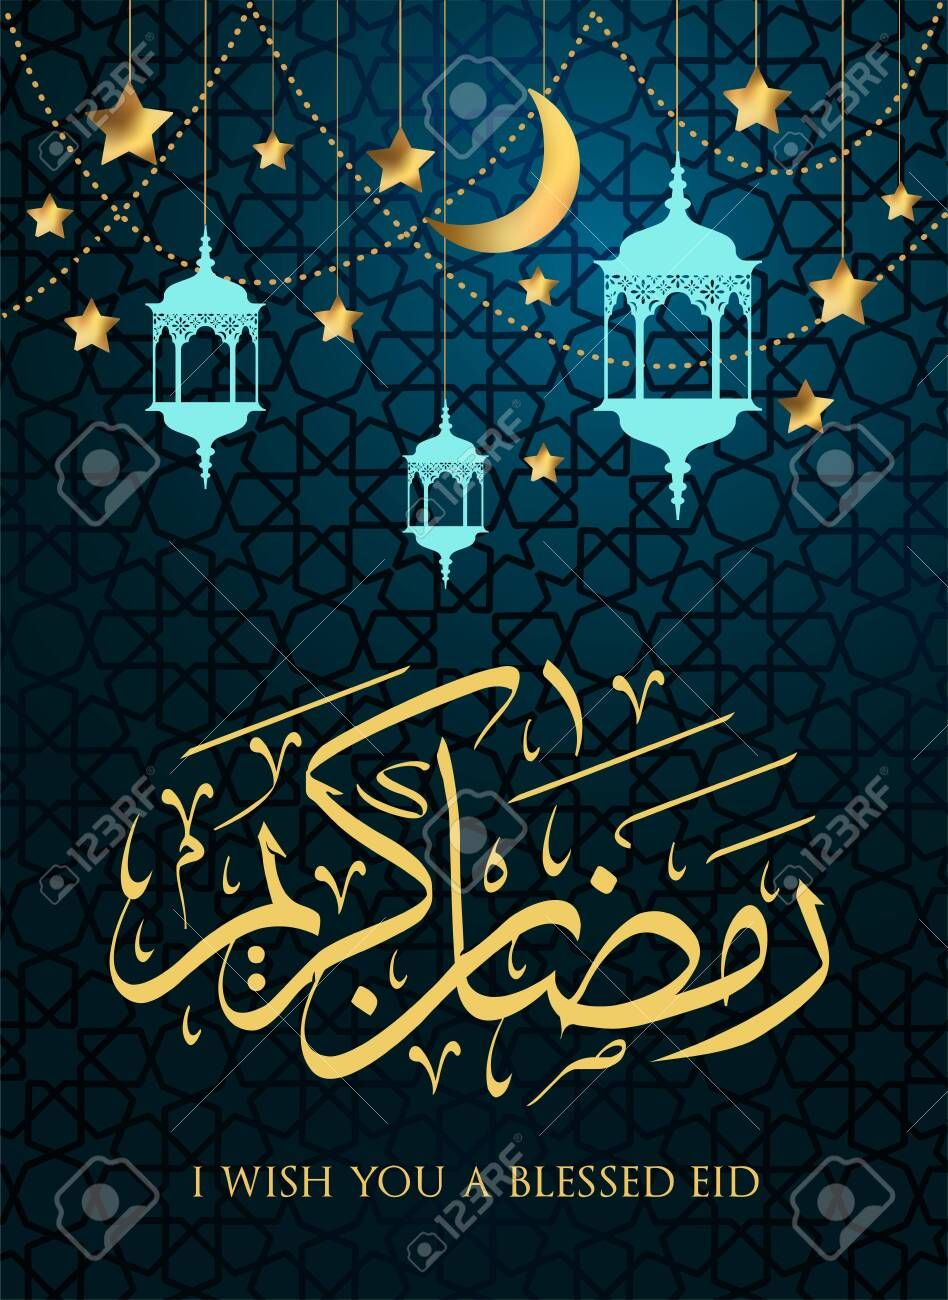 Ramadan Kareem Arabic Calligraphy Greeting Card Design Islamic With Gold Moon Translation Of Ramadan Kareem Islamic Ramadan Kareem Ramadan Eid Greeting Cards